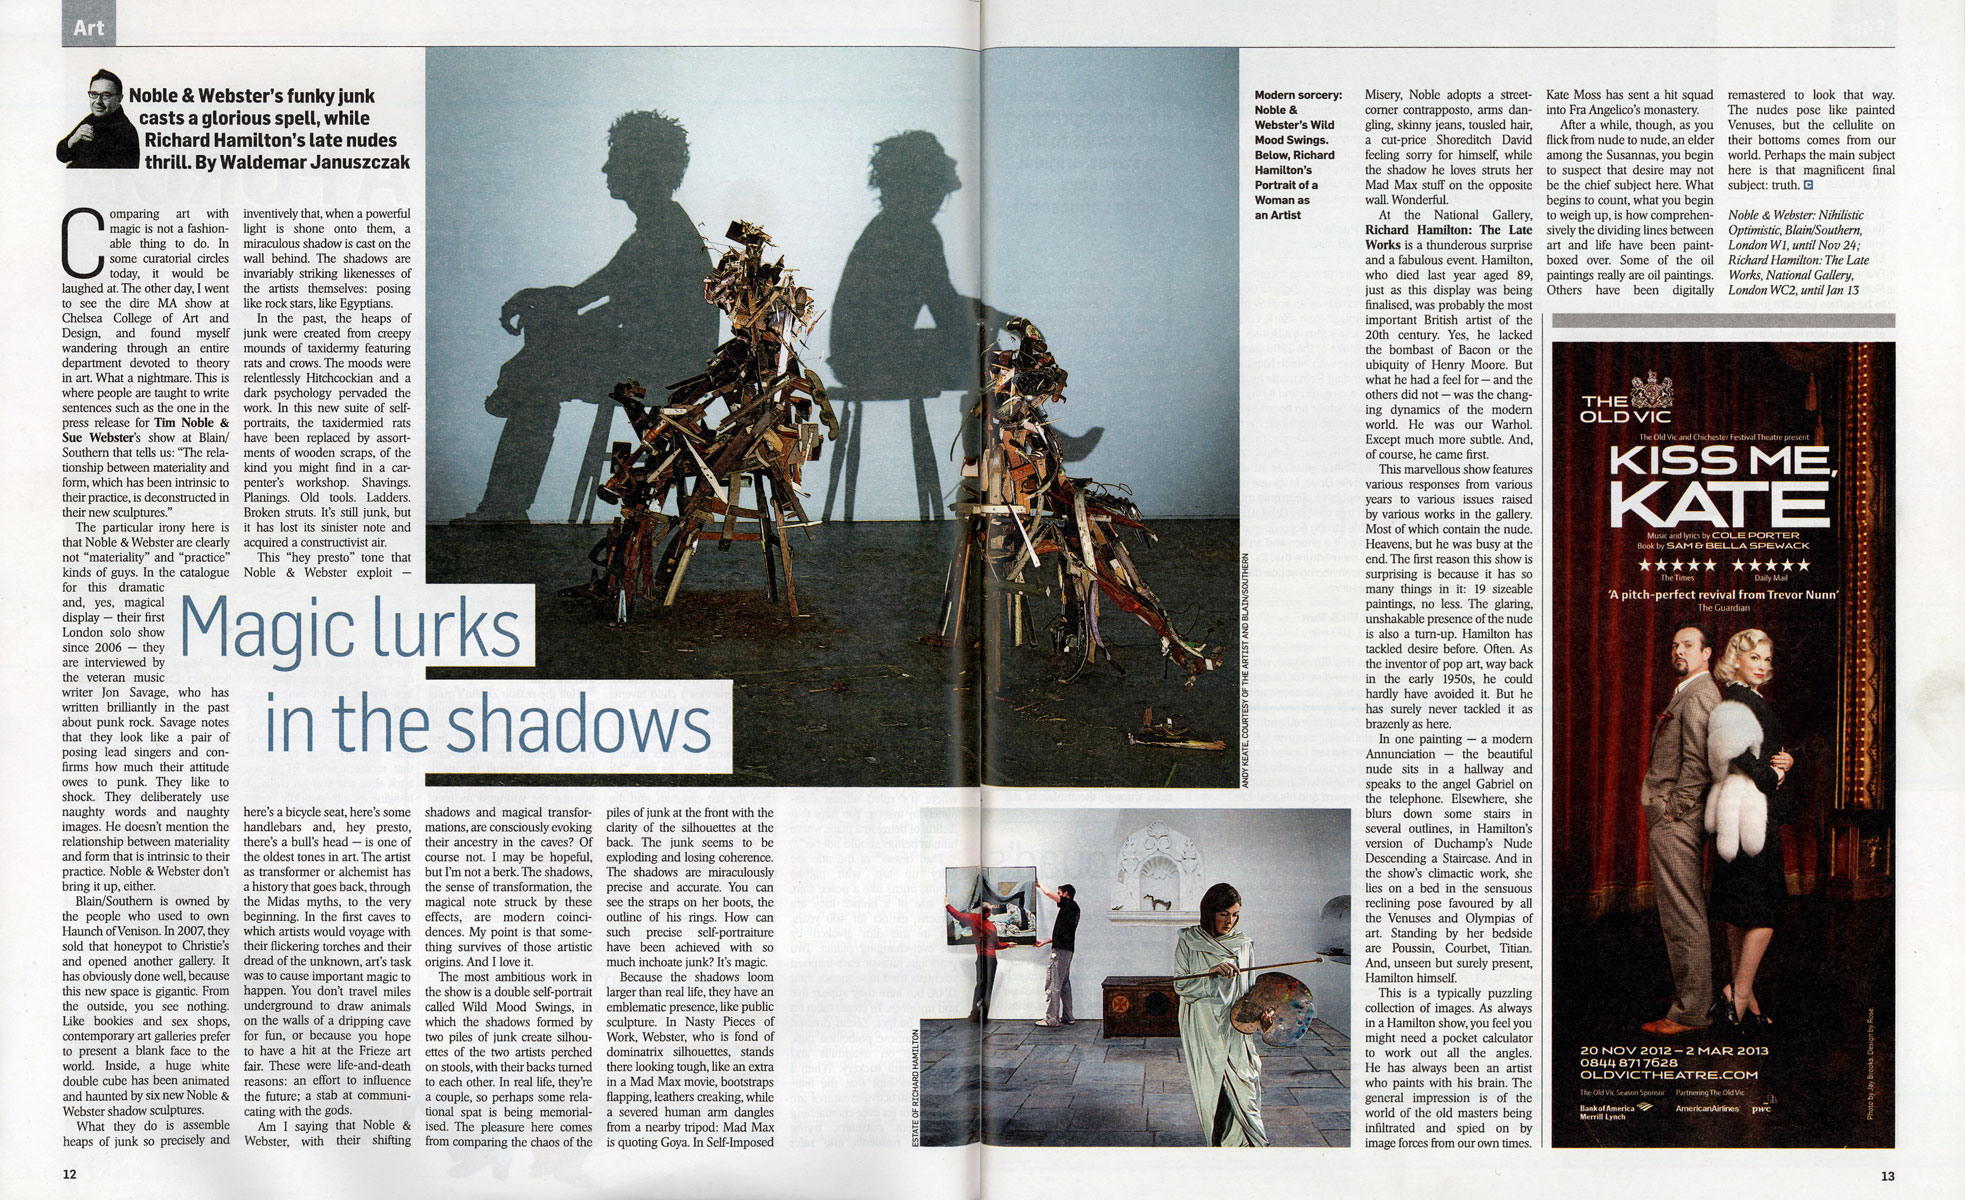 Sunday Times Culture Mag, Oct 2012 pgs 12-13